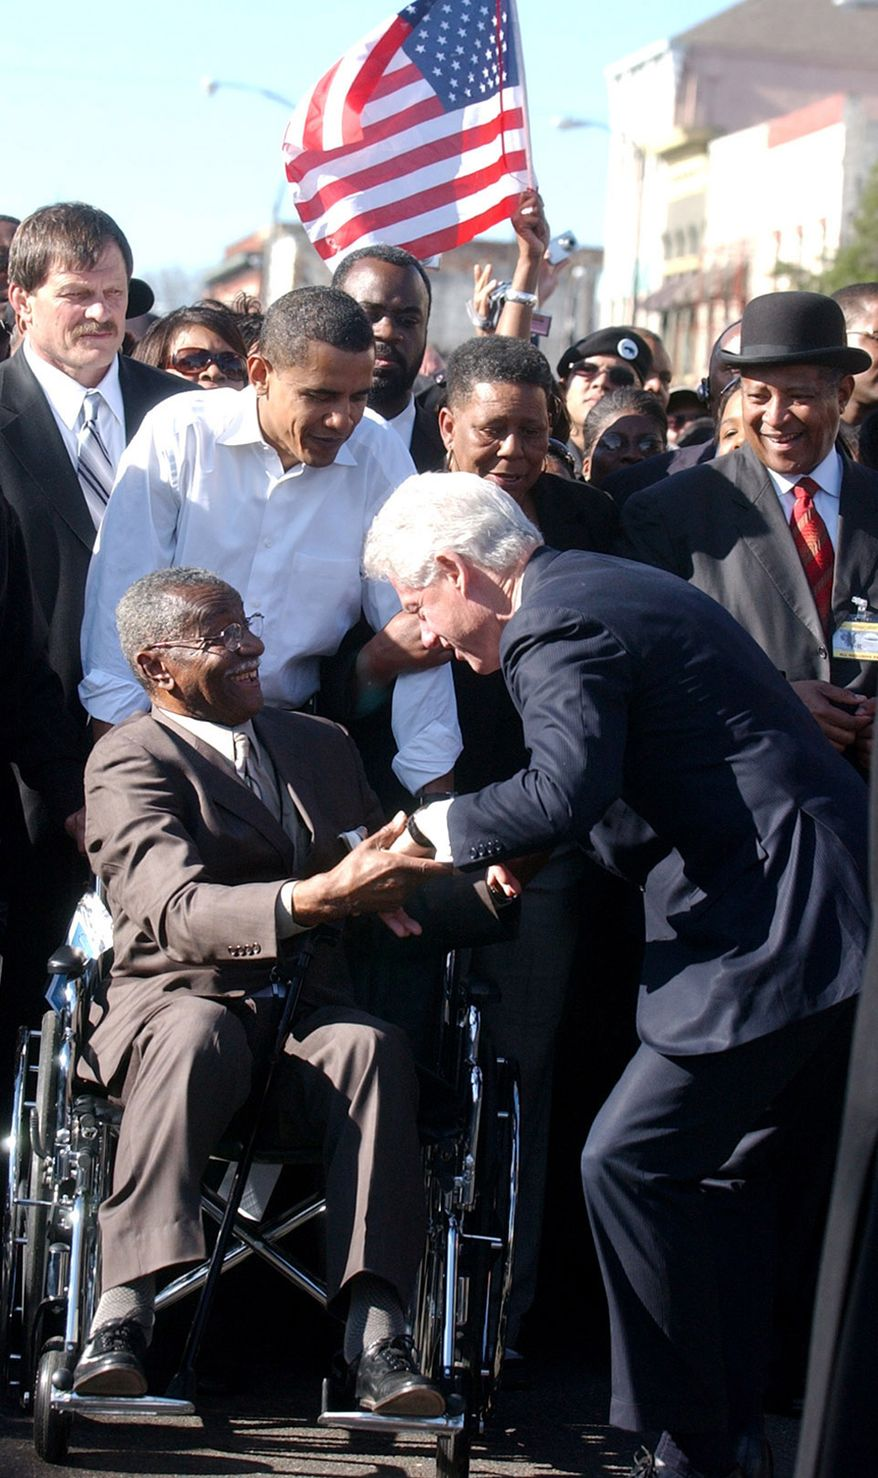 ** FILE ** Then-Sen. Barack Obama (second from left) looks on as the Rev. Fred L. Shuttlesworth (in wheelchair) greets former President Bill Clinton in Selma, Ala., in March 2007. (AP Photo/The Birmingham News, Linda Stelter)